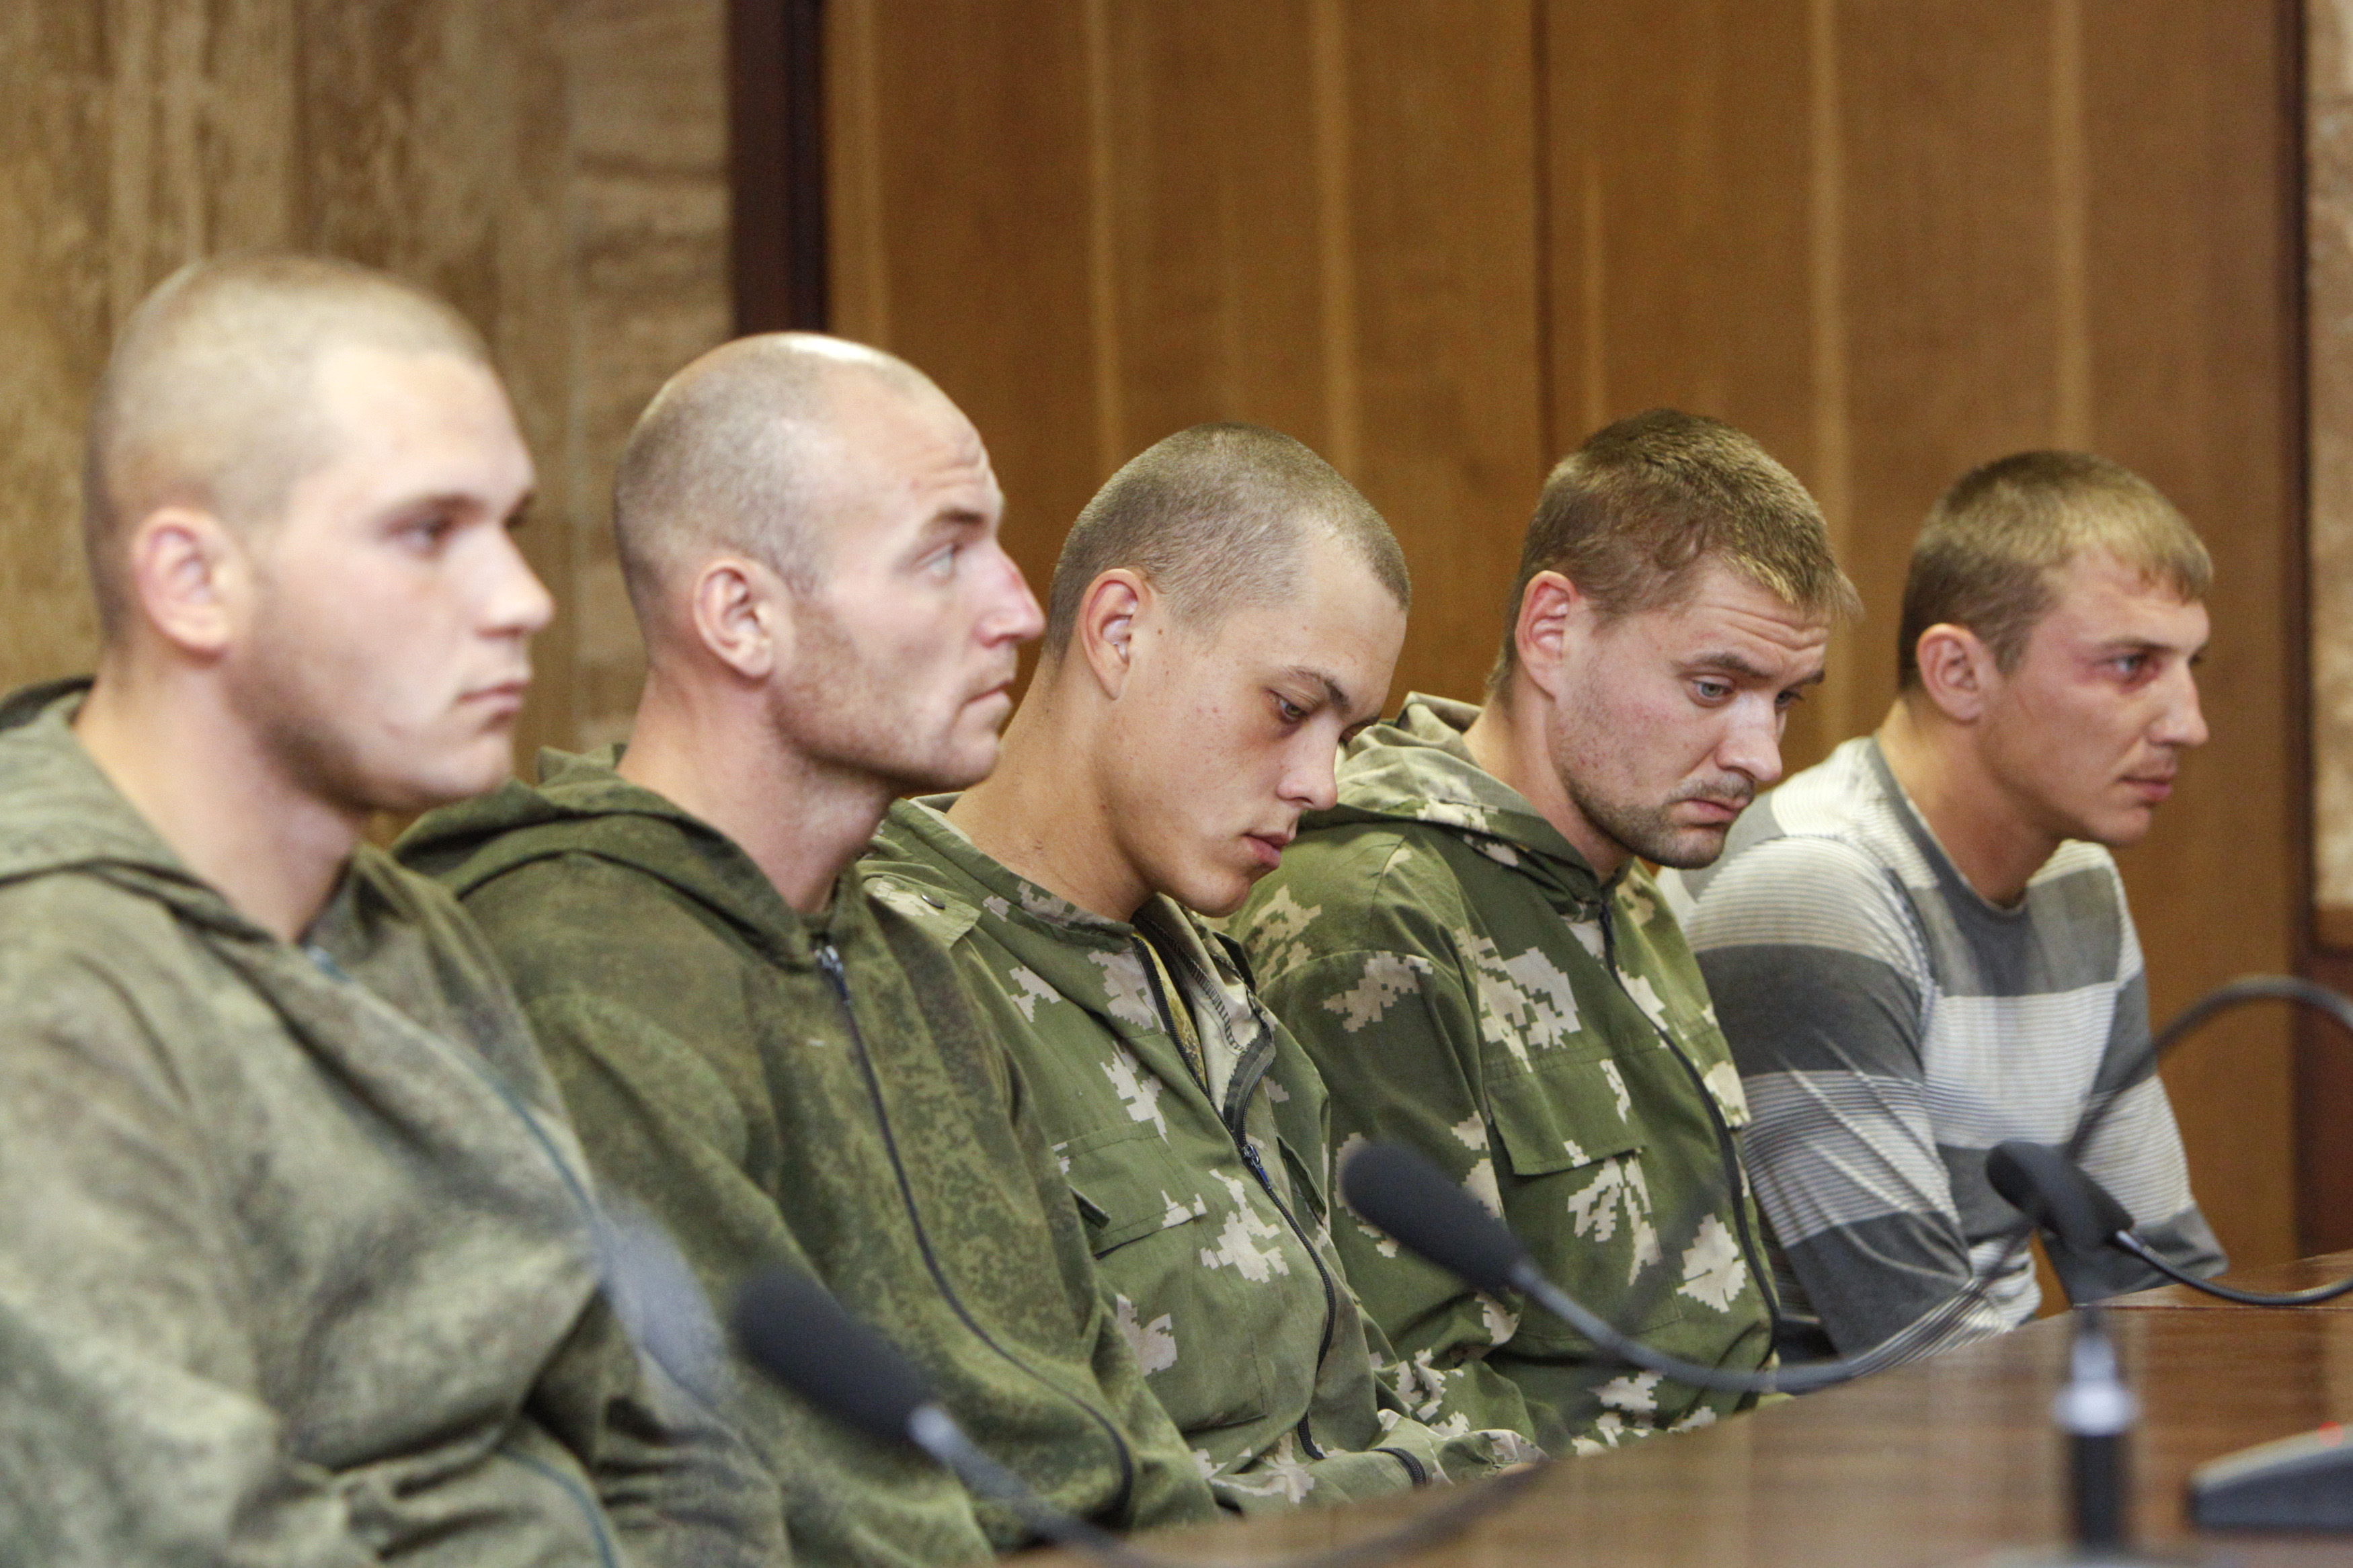 """A group of Russian servicemen detained by Ukrainian authorities attend a news conference in Kiev on August 27, 2014. Ukraine said on Tuesday its forces had captured a group of Russian paratroopers who had crossed into Ukrainian territory on a """"special mis"""